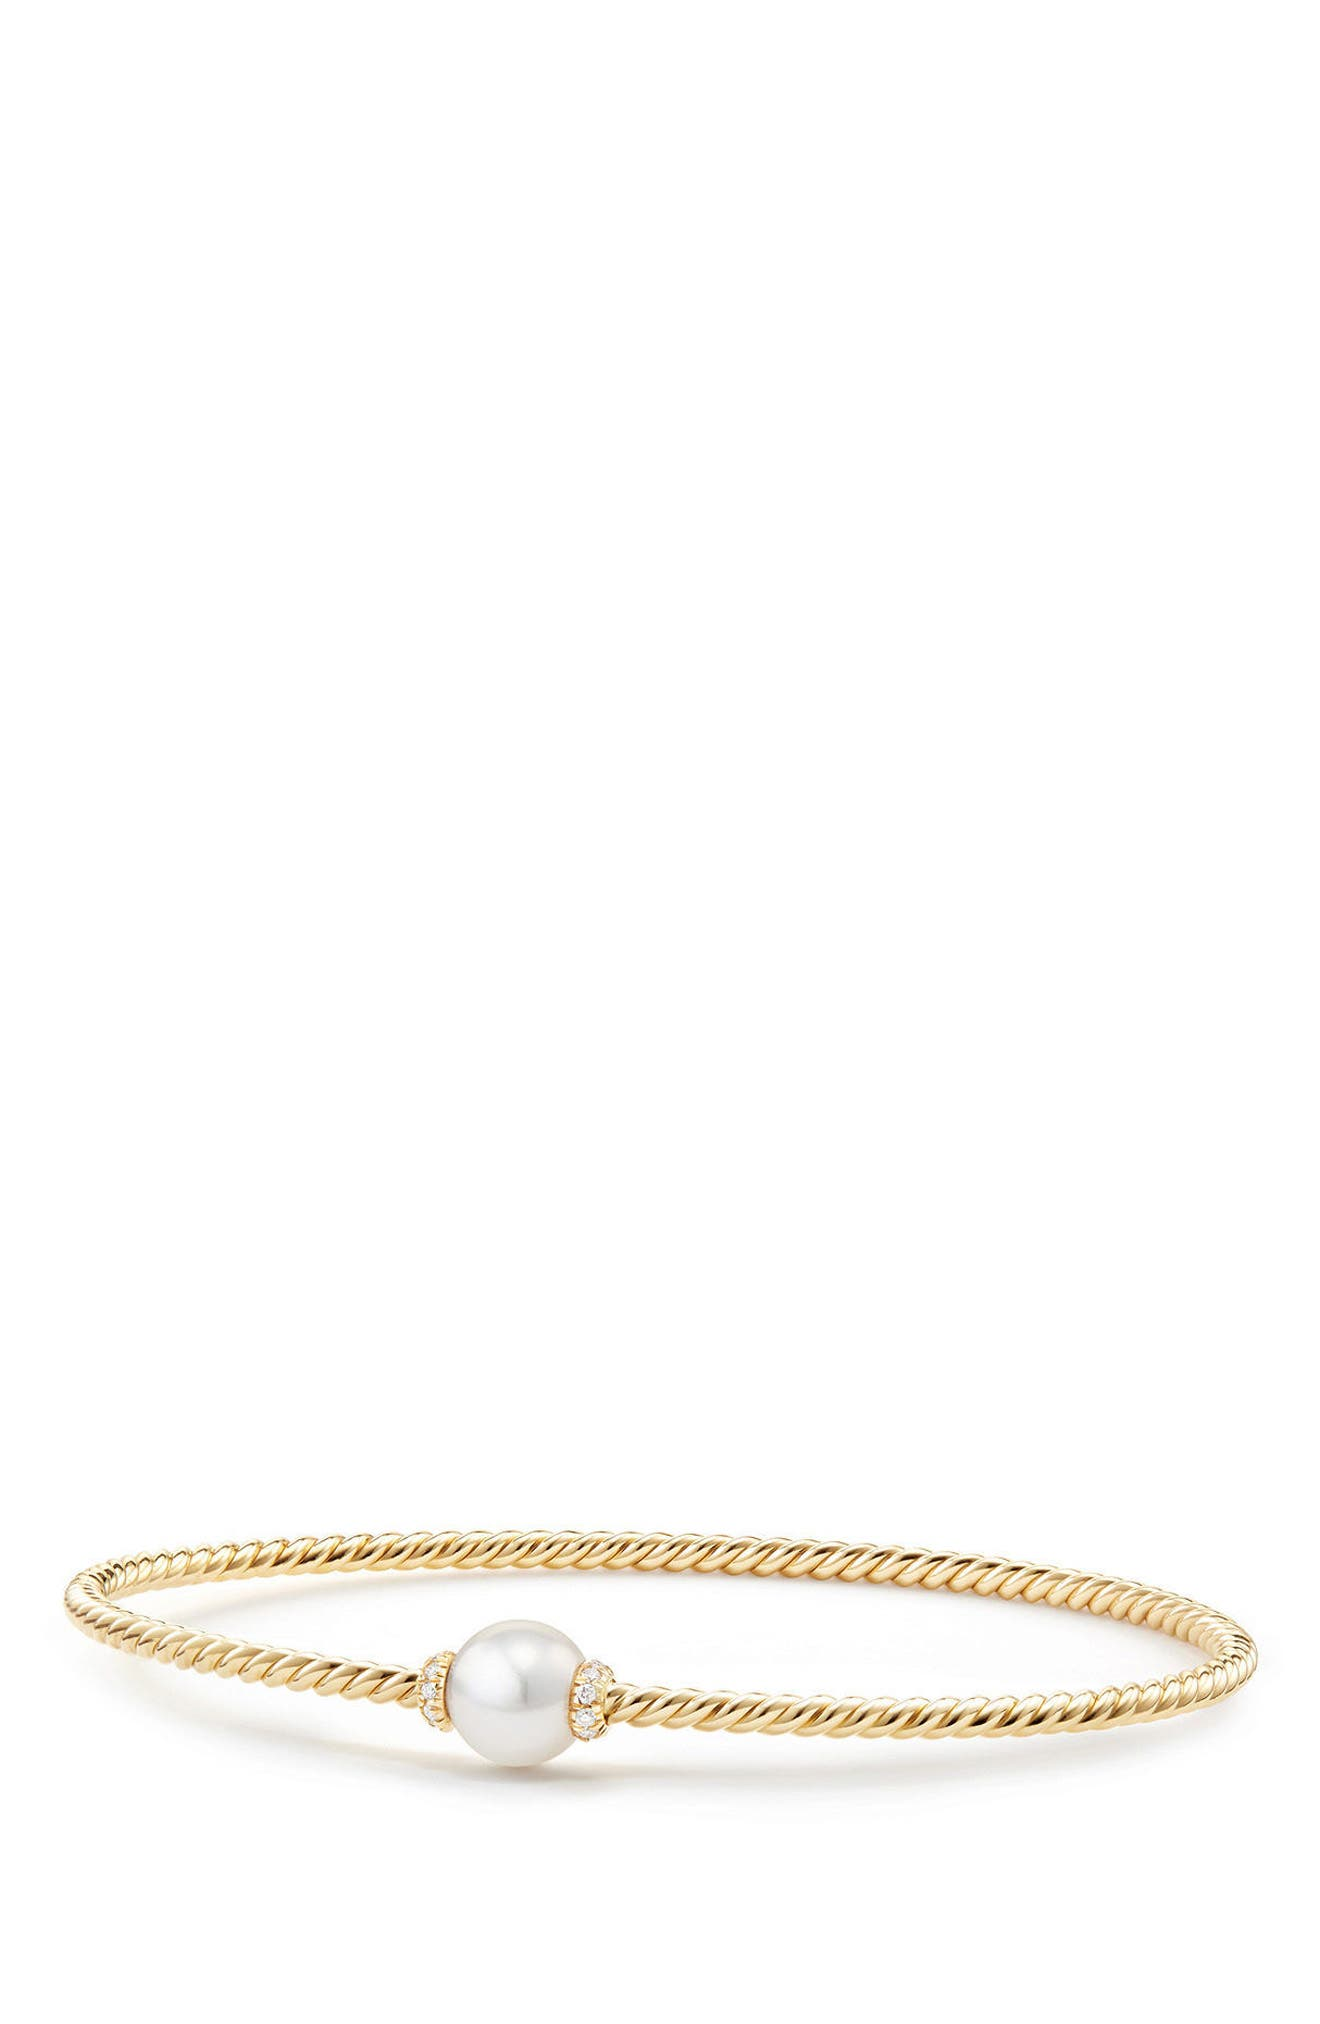 Solari Station Bracelet with Cultured Pearl & Diamonds in 18K Gold,                             Main thumbnail 1, color,                             YELLOW GOLD/ DIAMOND/ PEARL